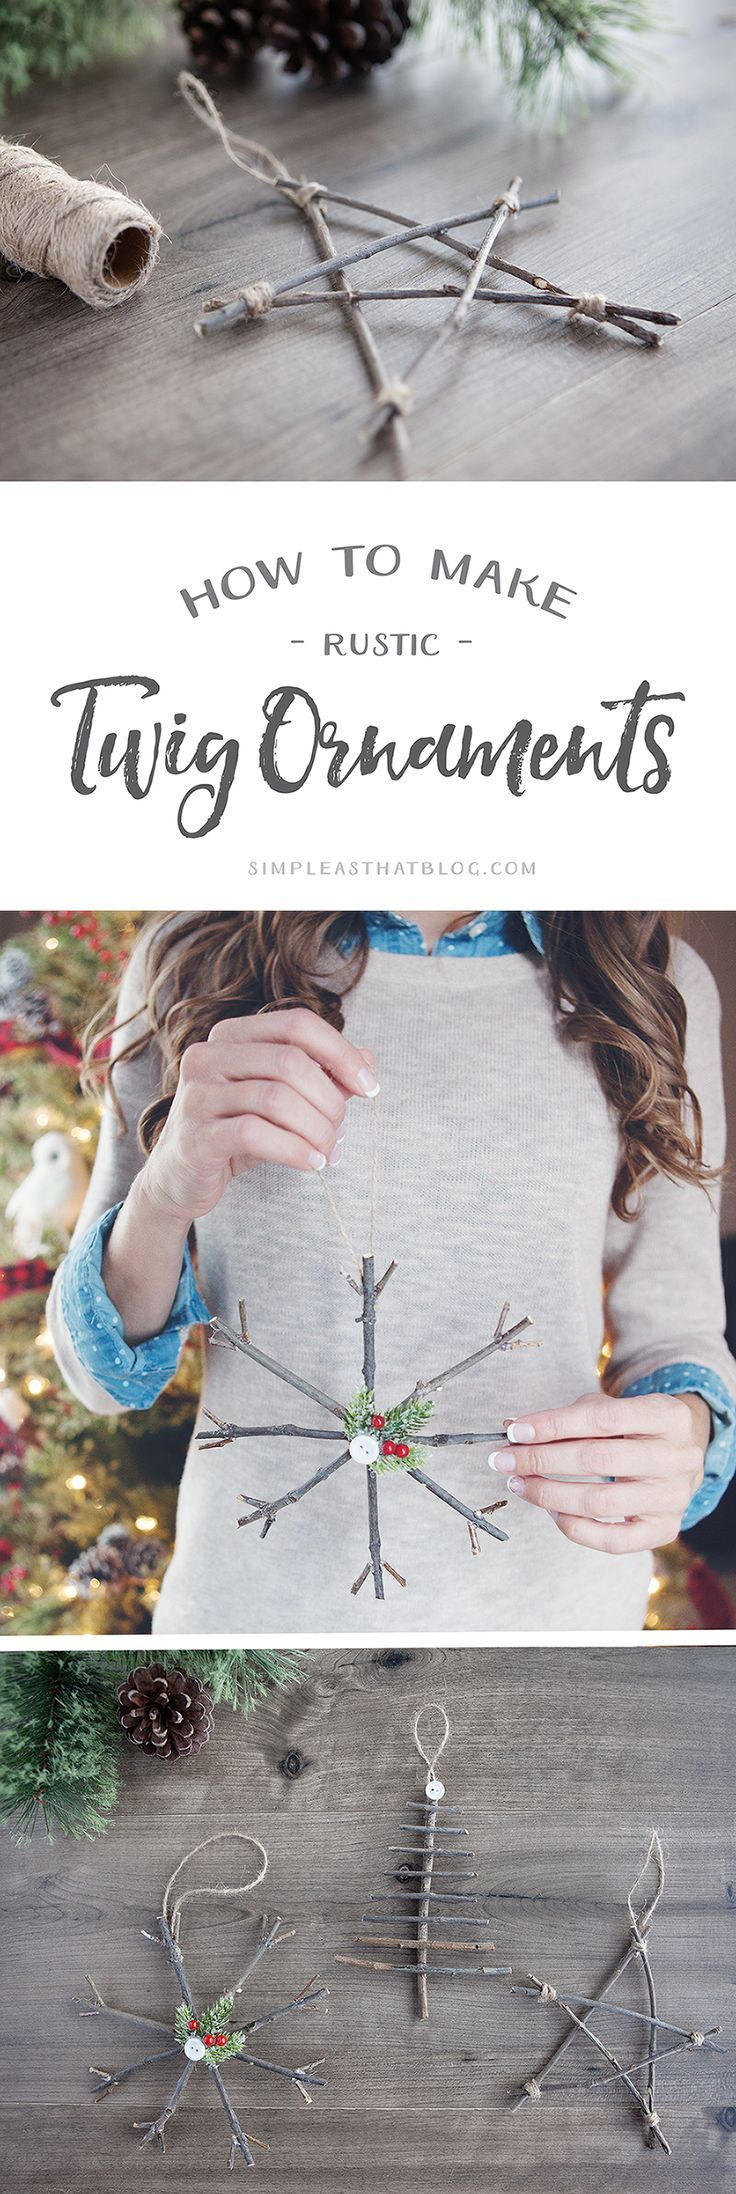 Bring a touch of nature indoors this year as you decorate your tree – learn how to make rustic twig Christmas ornaments! They're simple, inexpensive and look beautiful!